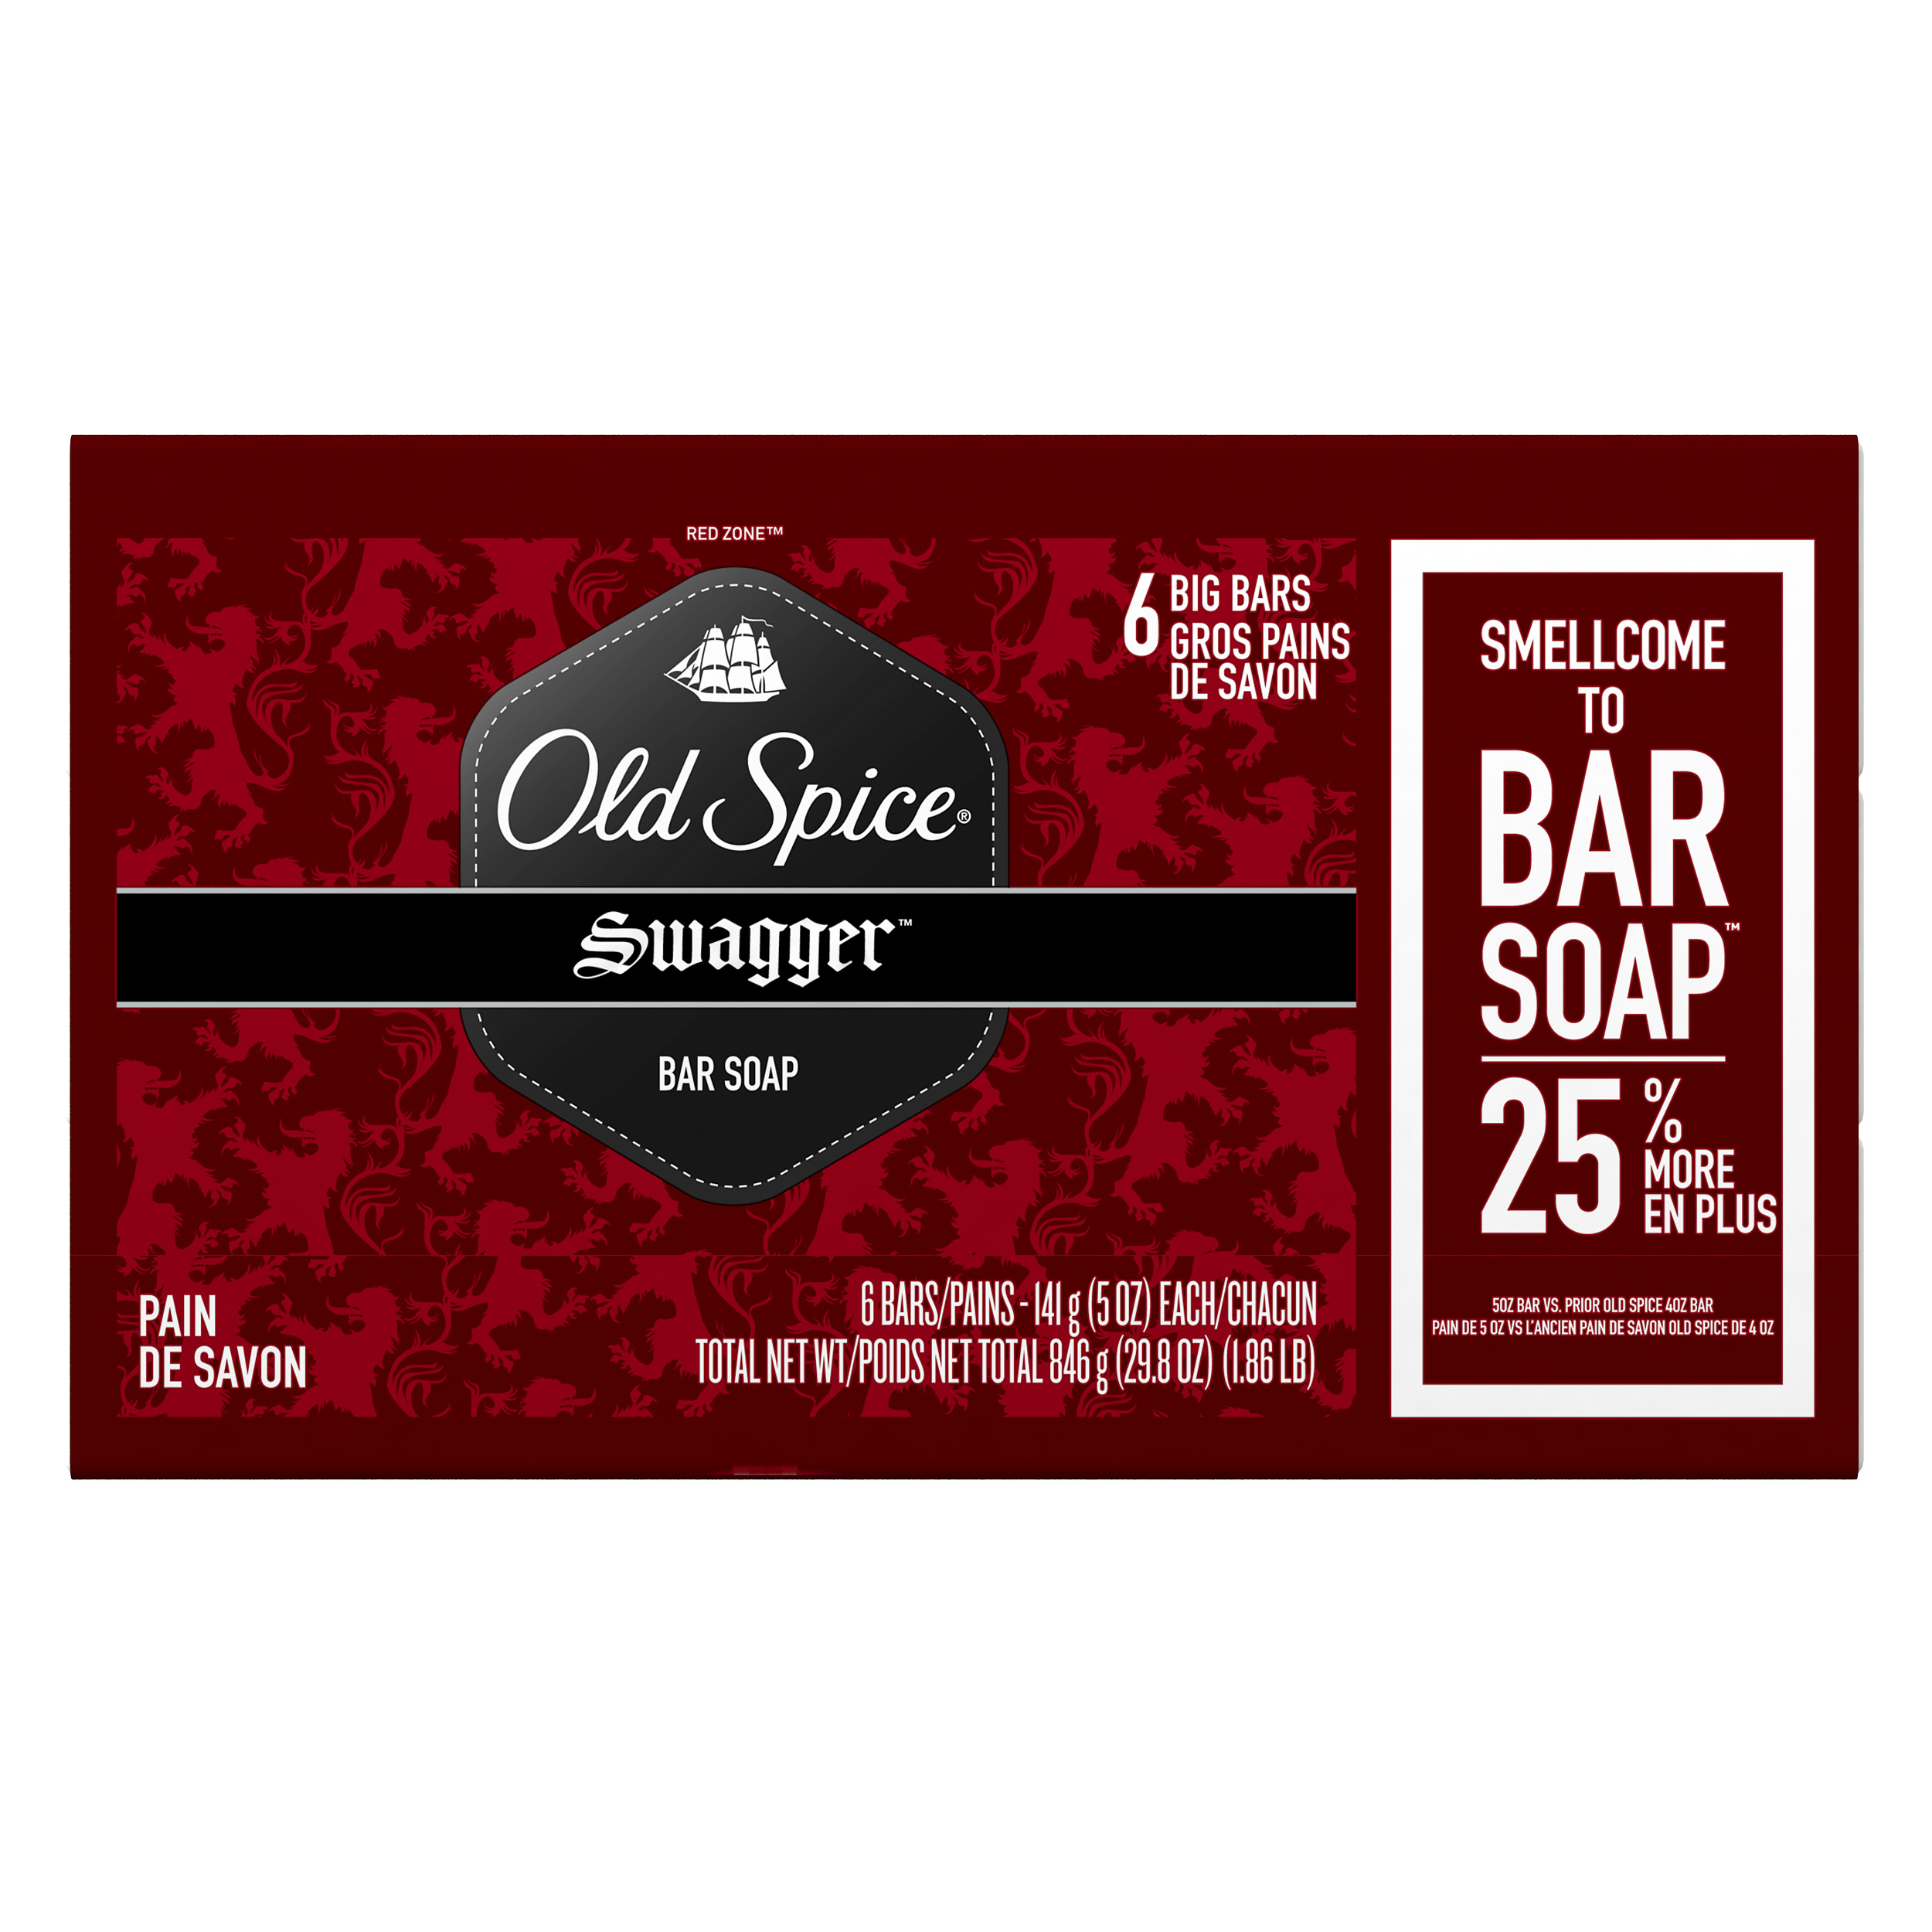 Old Spice Red Zone Swagger Scent Mens Bar Soap 6 Bar 5 oz